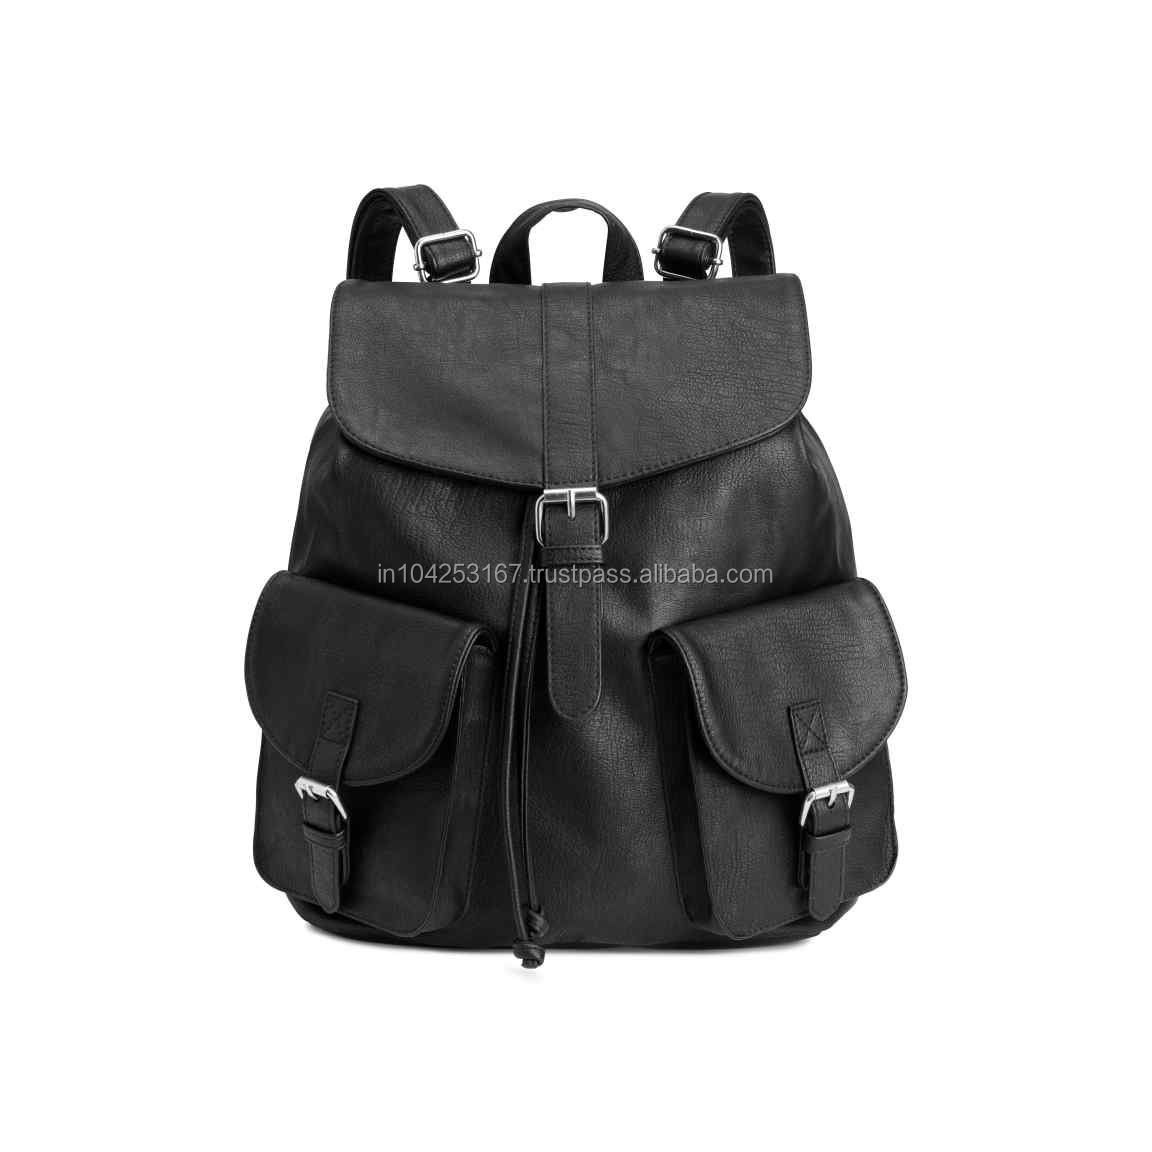 black leather backpack pattern for men